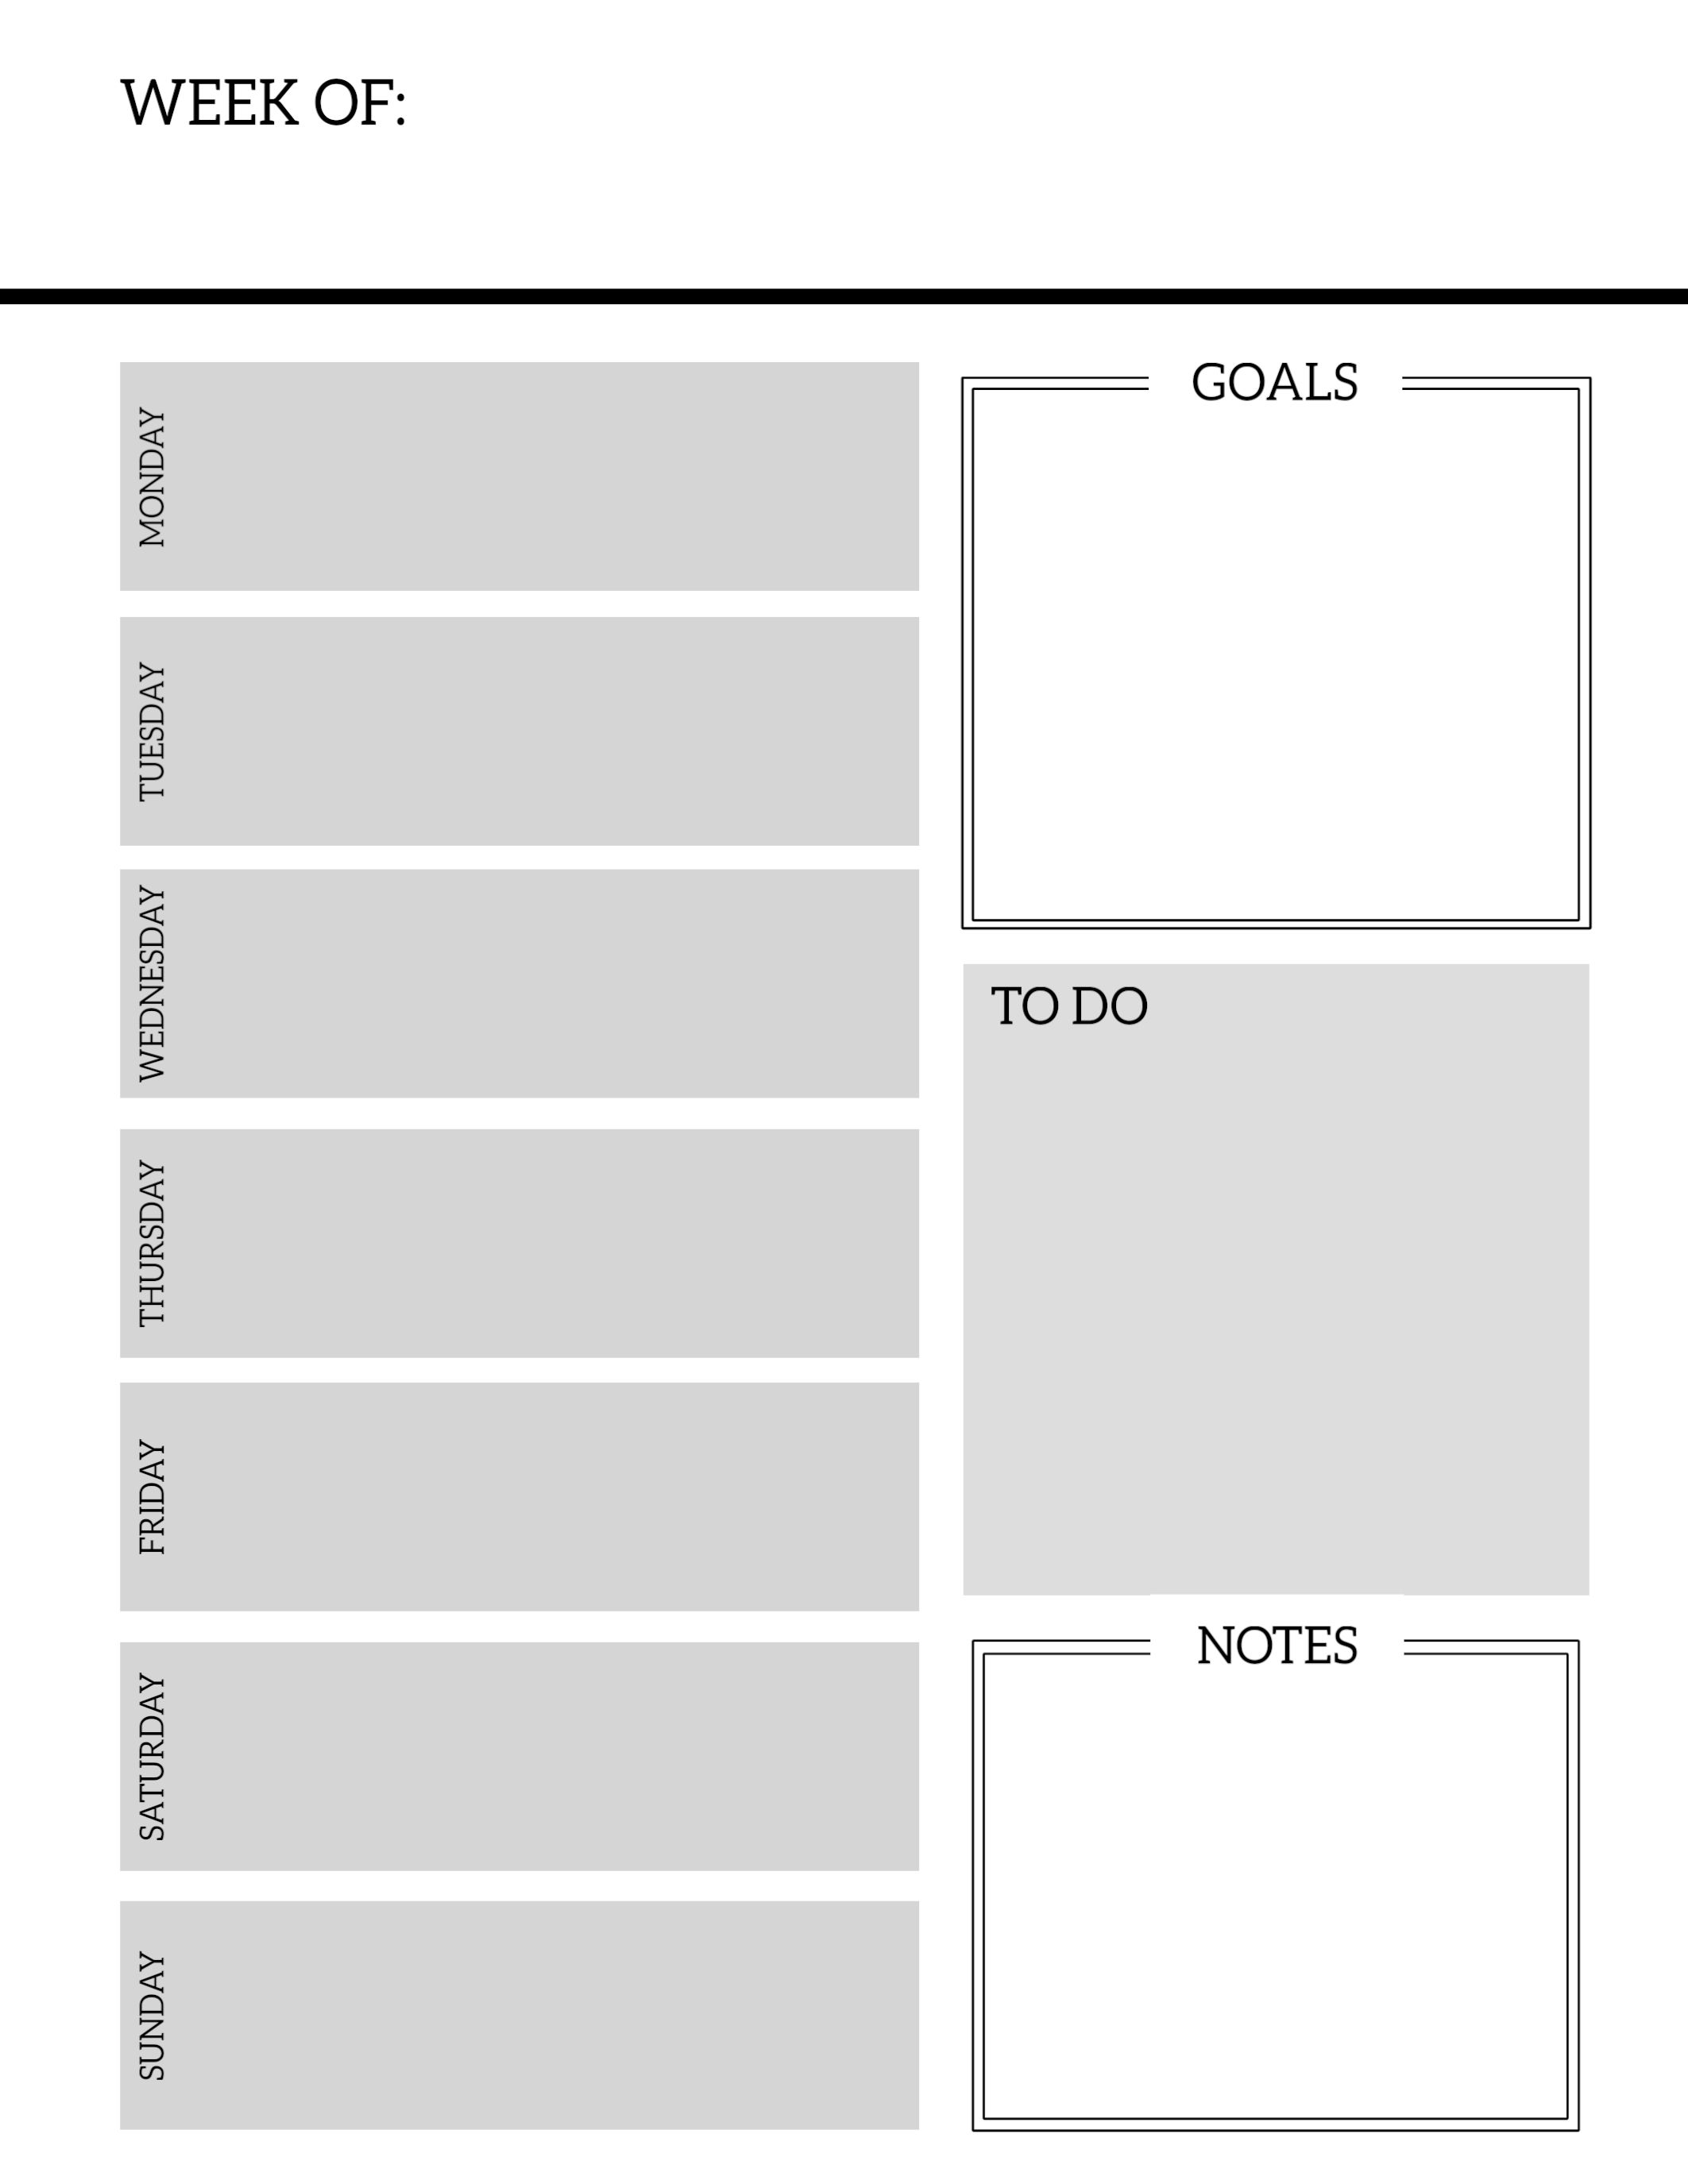 Pin by Mary G on General | Pinterest | Meal planner template, Free ...